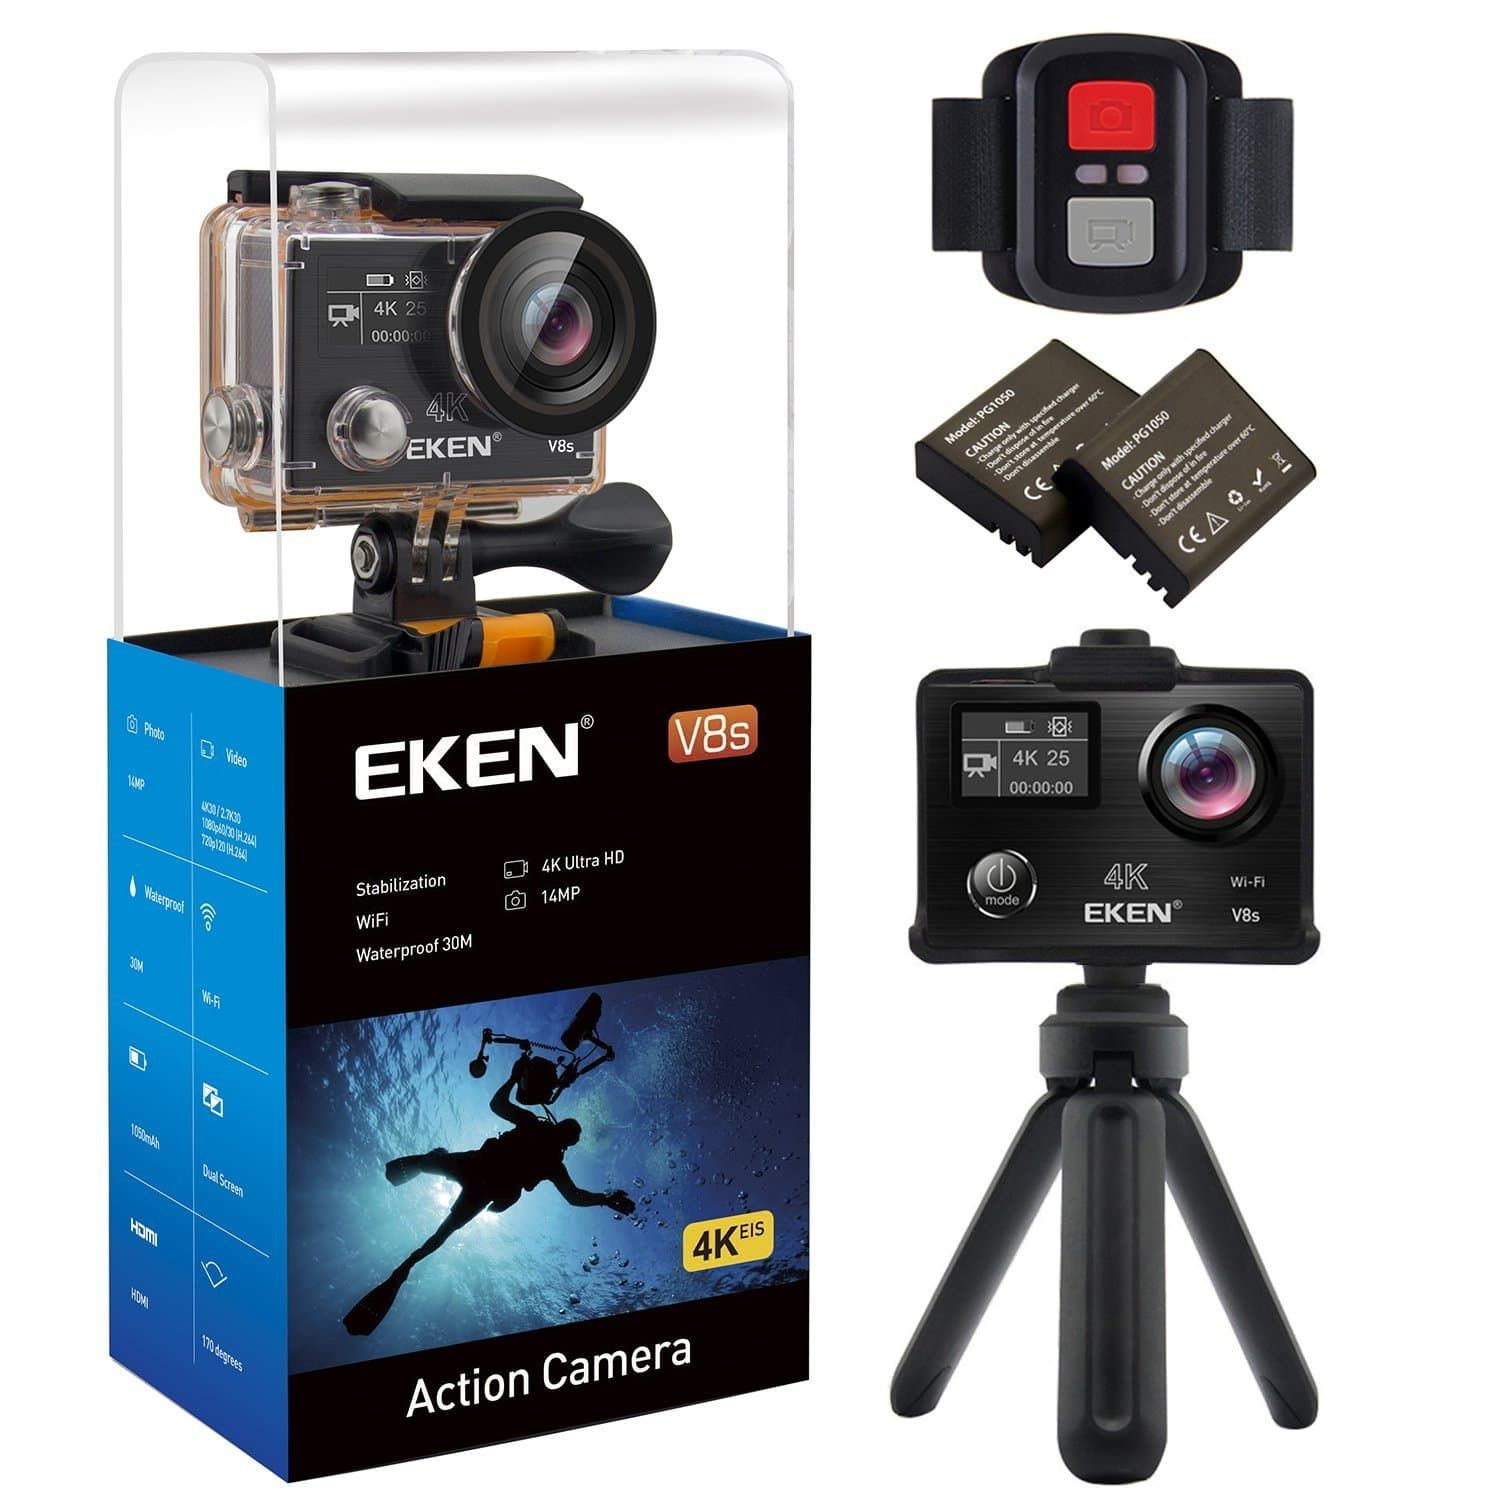 Top 10 Best Action Cameras in 2020 Reviews & Best for